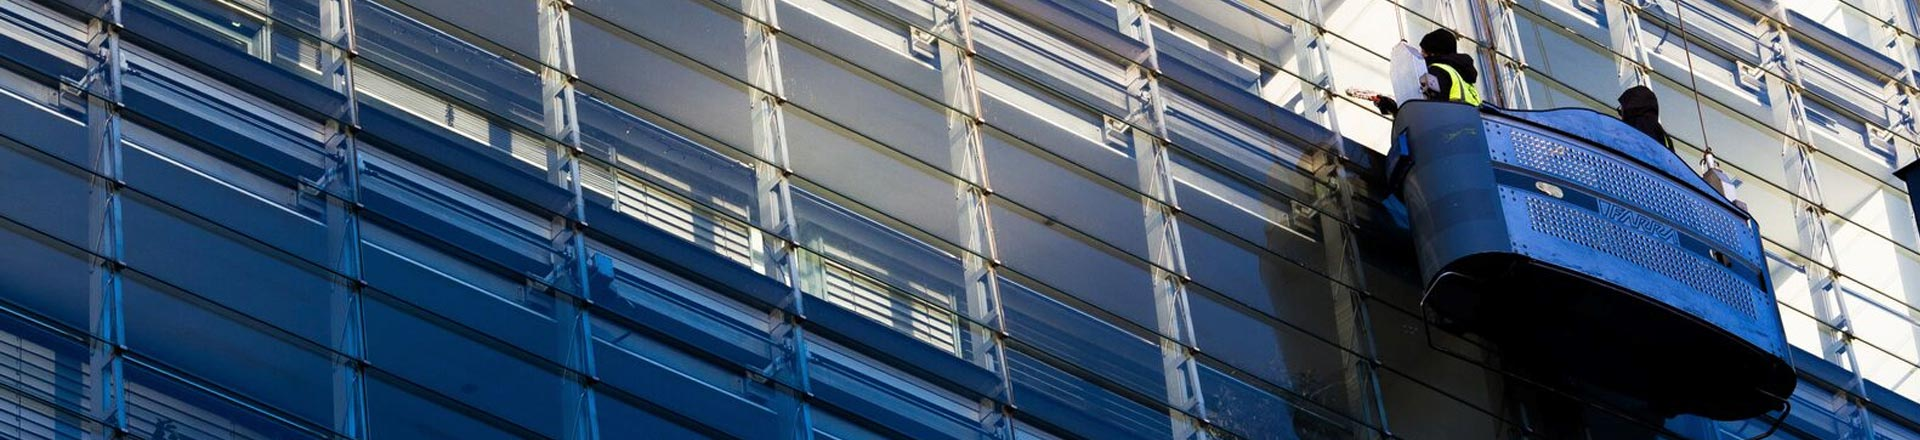 High Rise Cradle Window Cleaning in Manchester and the North West - HCS Cleaning Services